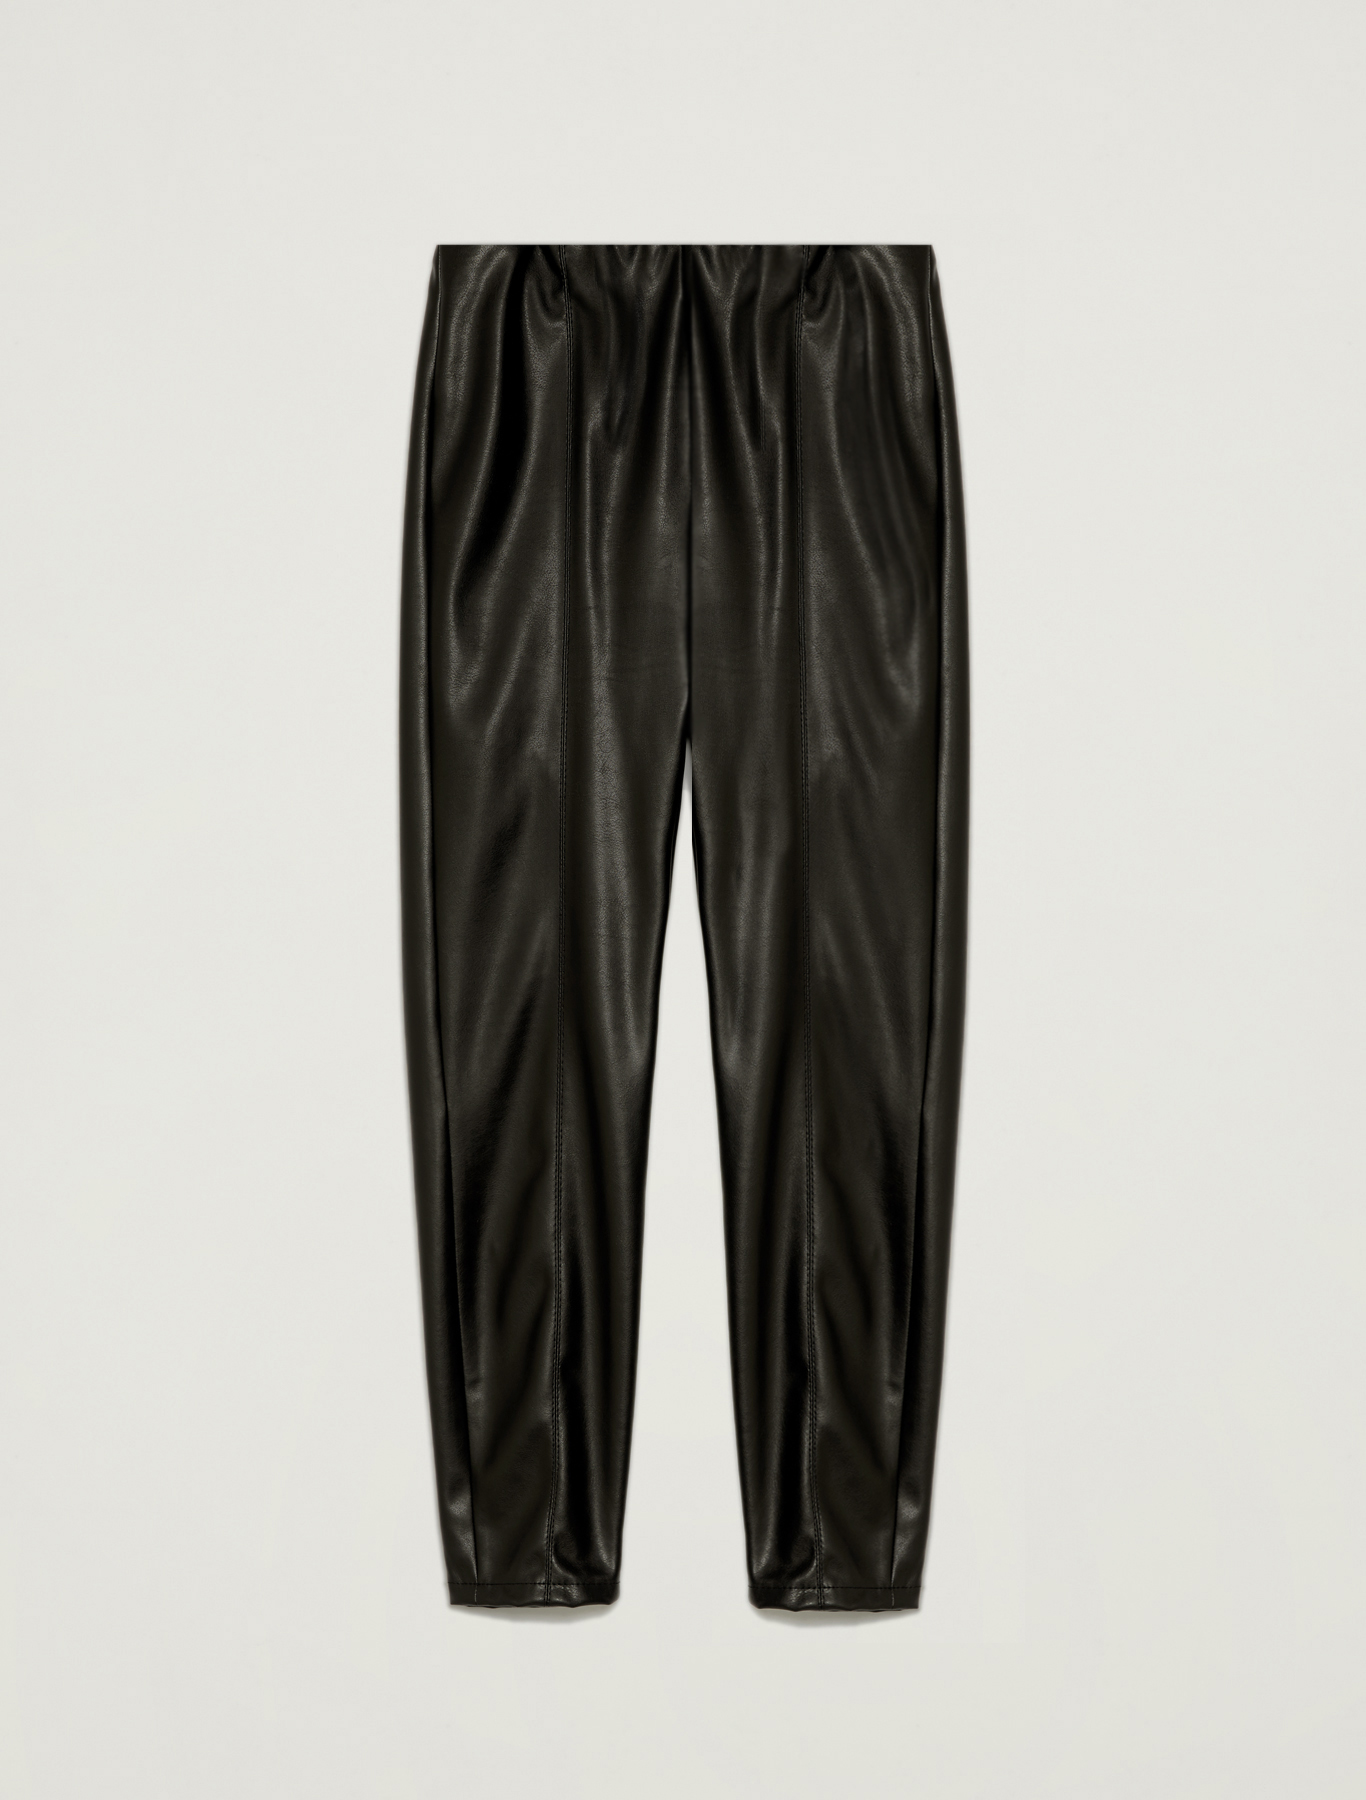 Skinny coated jersey trousers - black - pennyblack